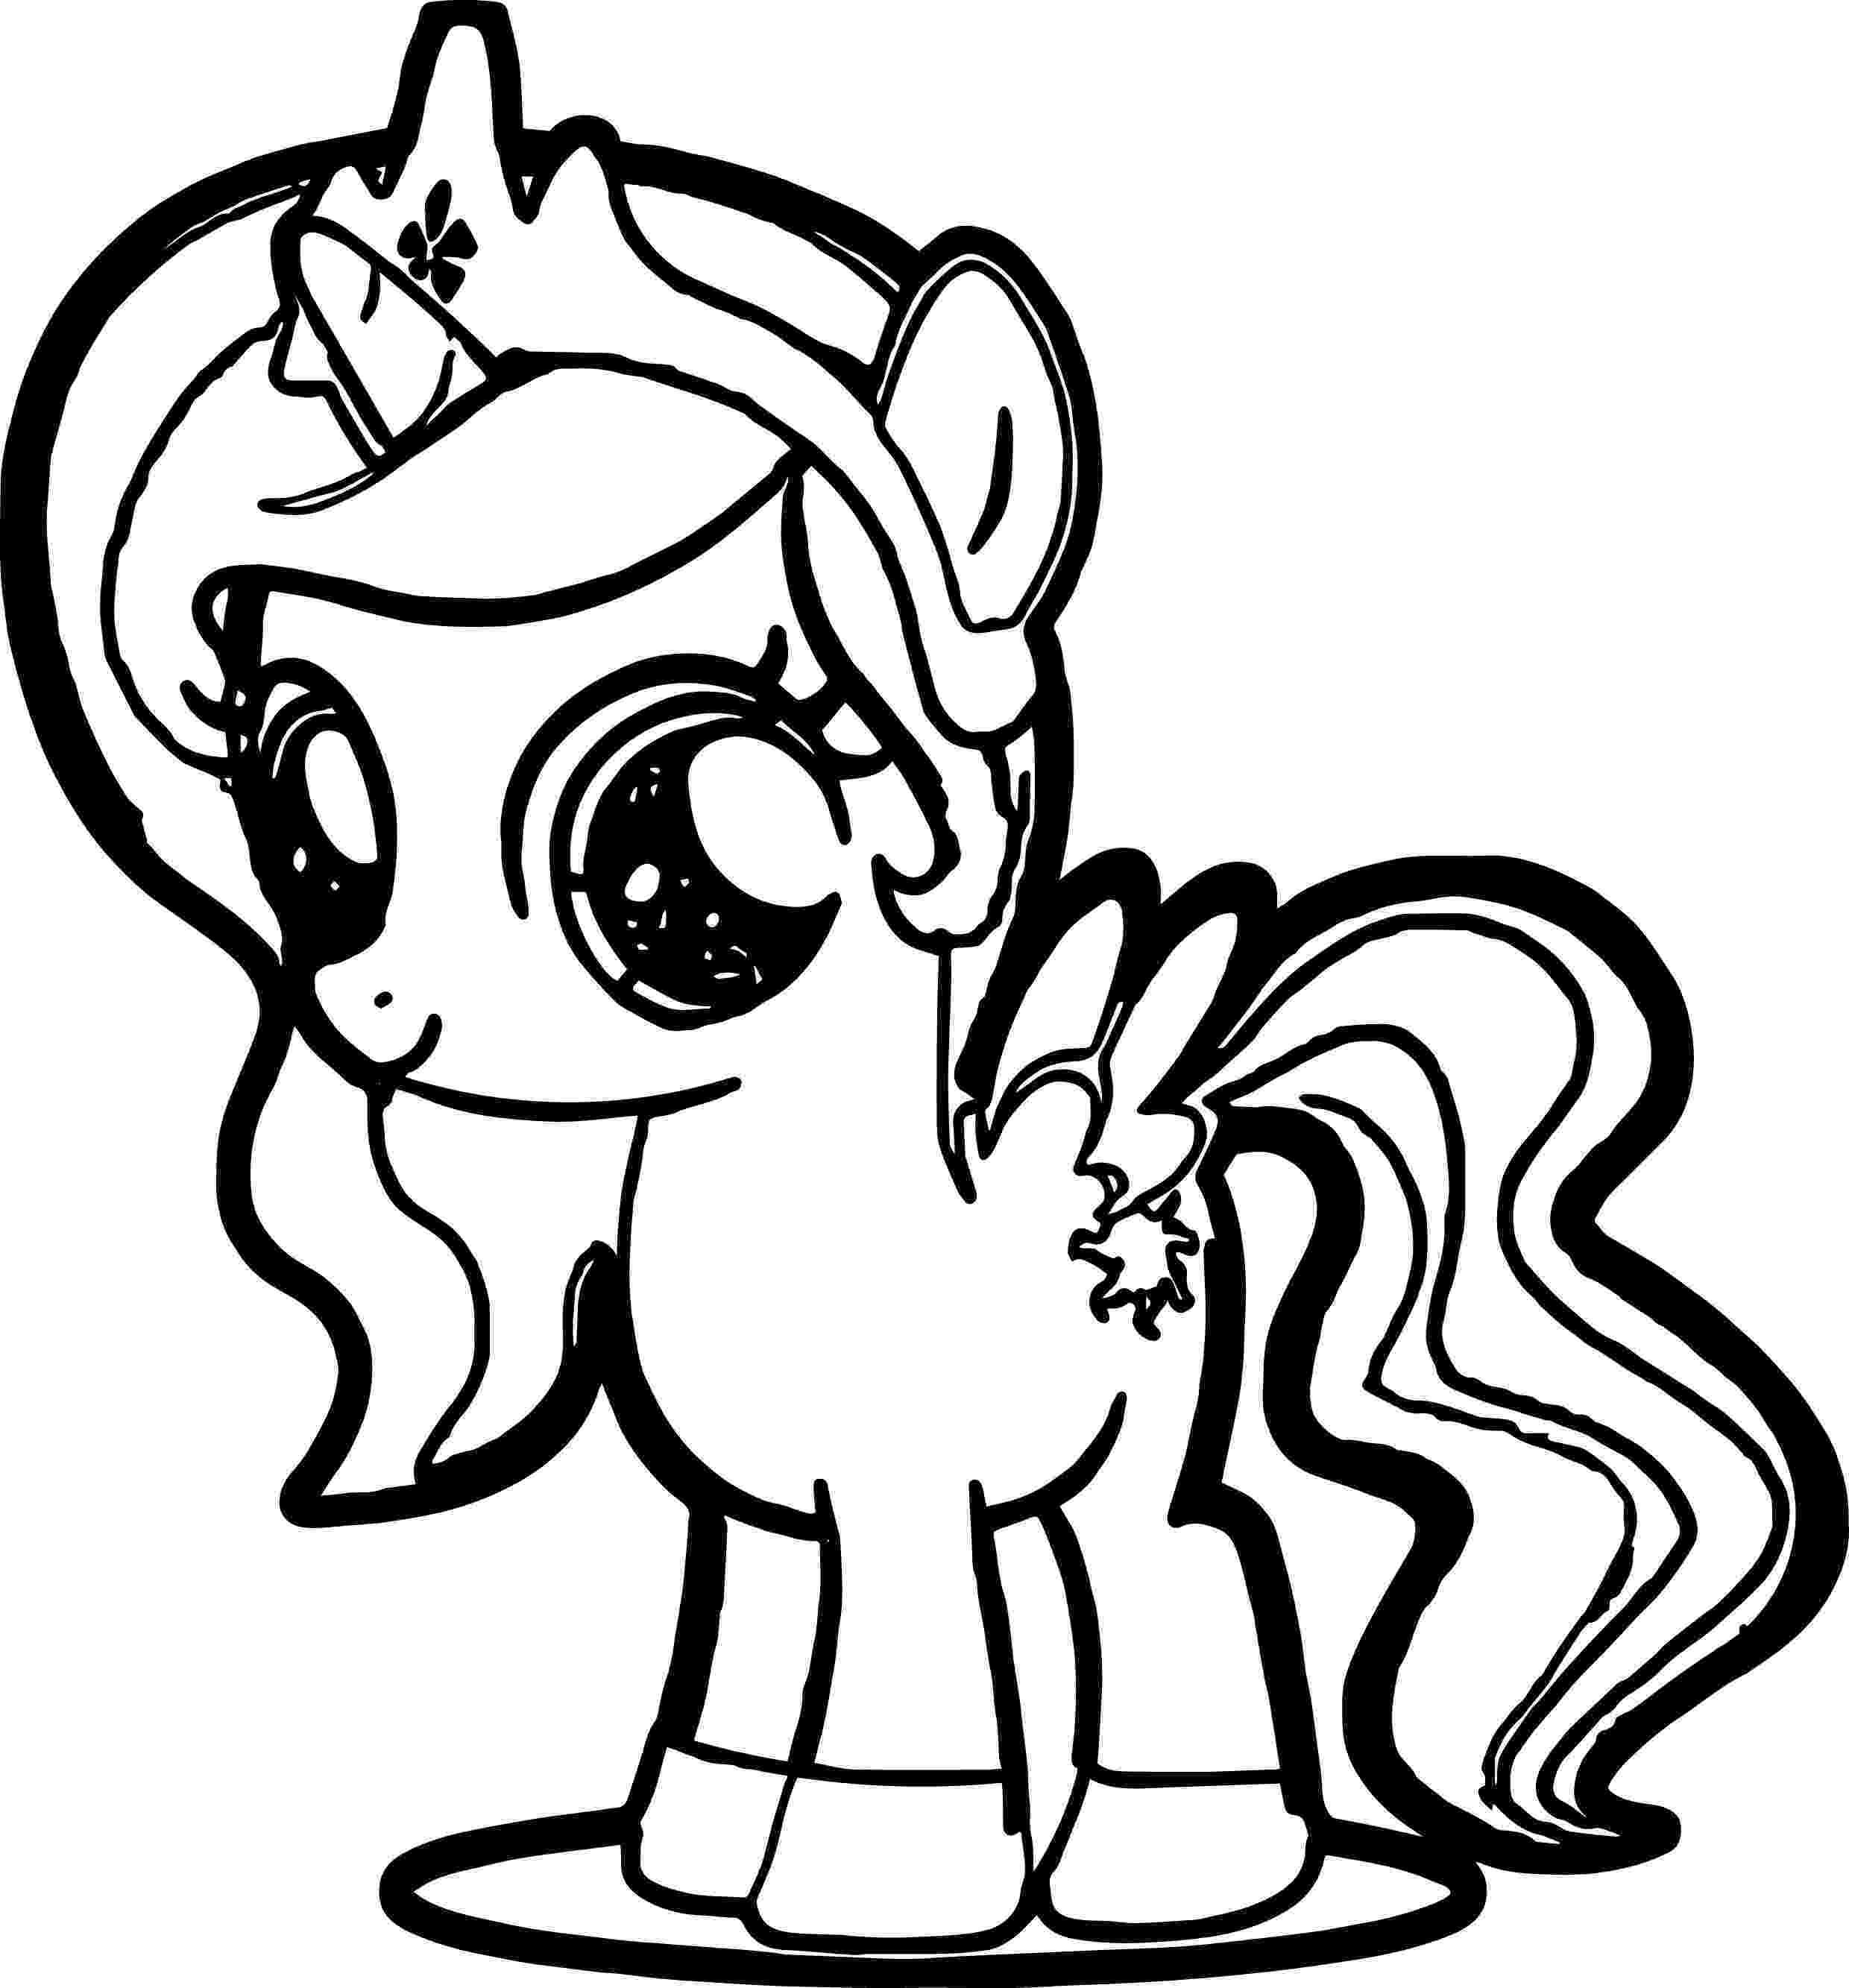 my little pony coloring sheets my little pony coloring pages team colors my sheets coloring pony little